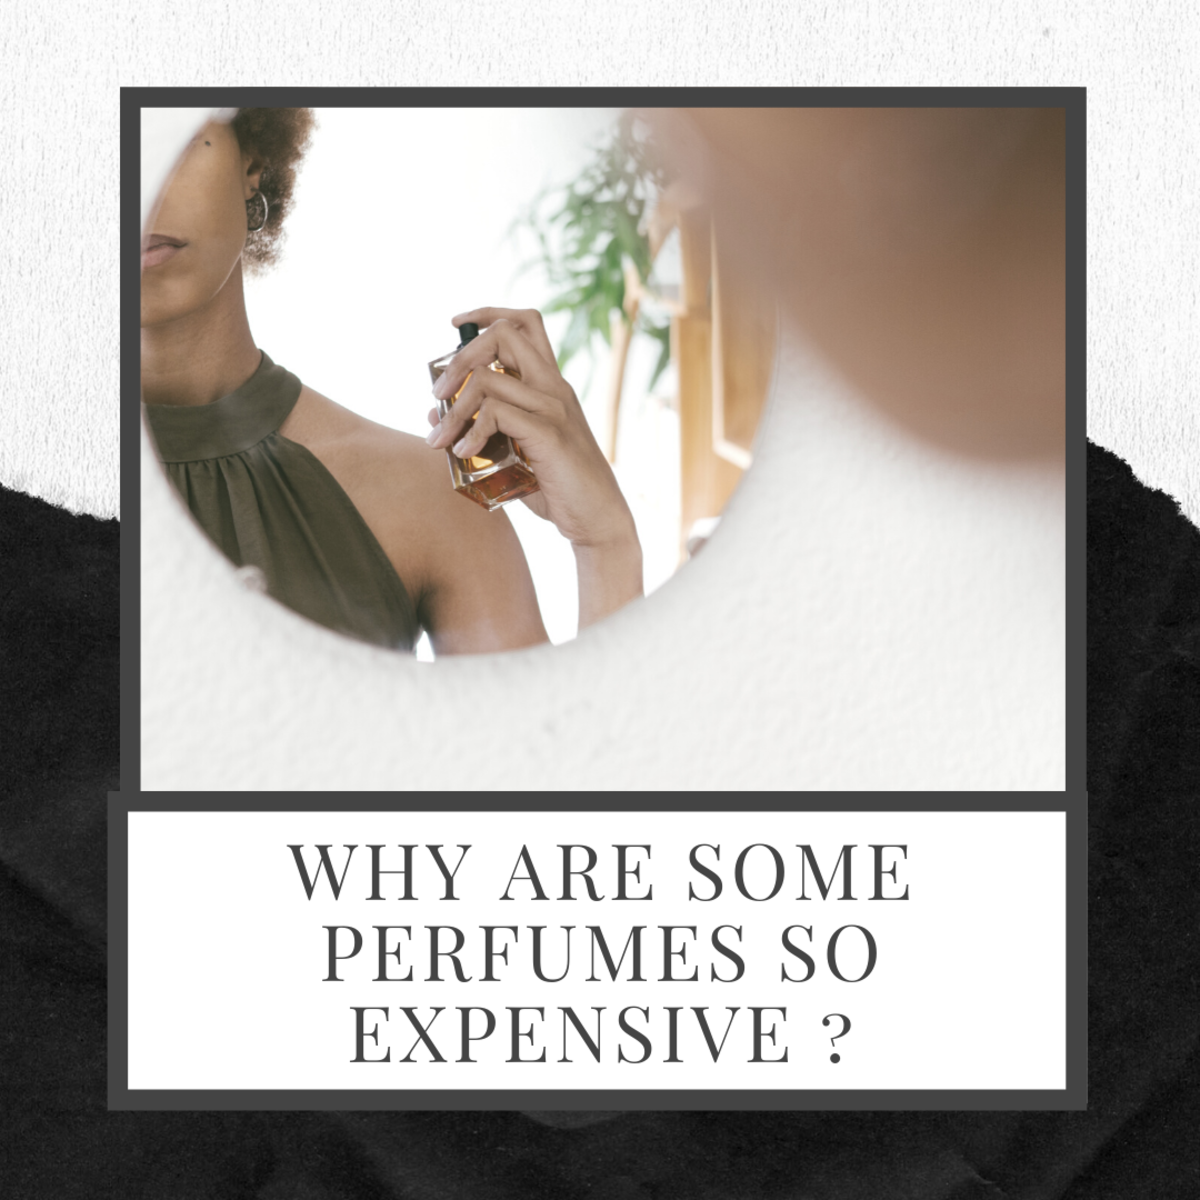 Why Are Some Perfumes So Expensive?